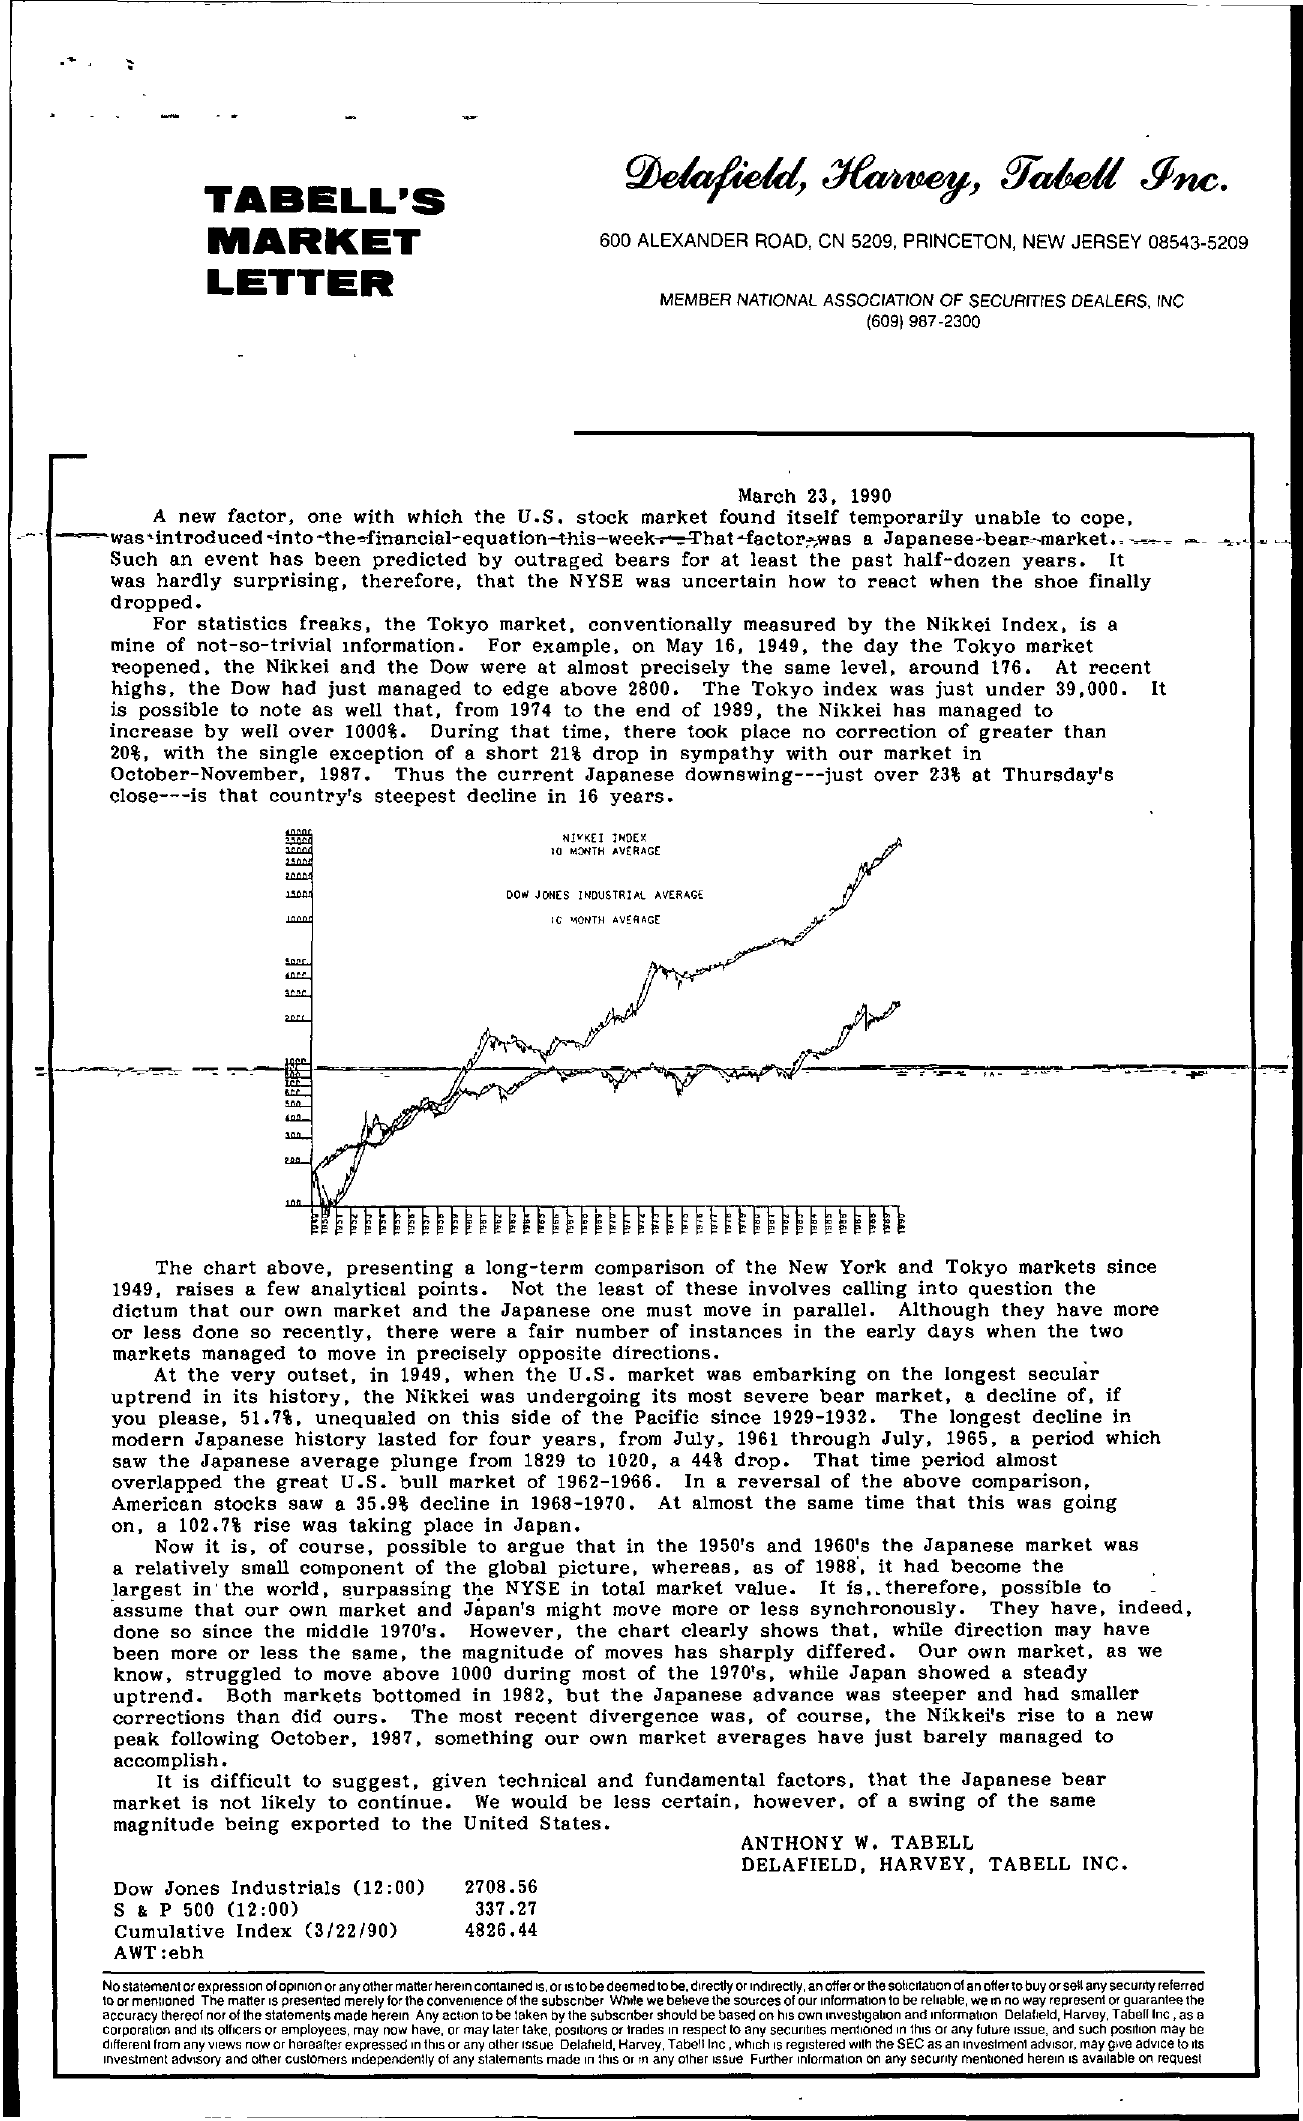 Tabell's Market Letter - March 23, 1990